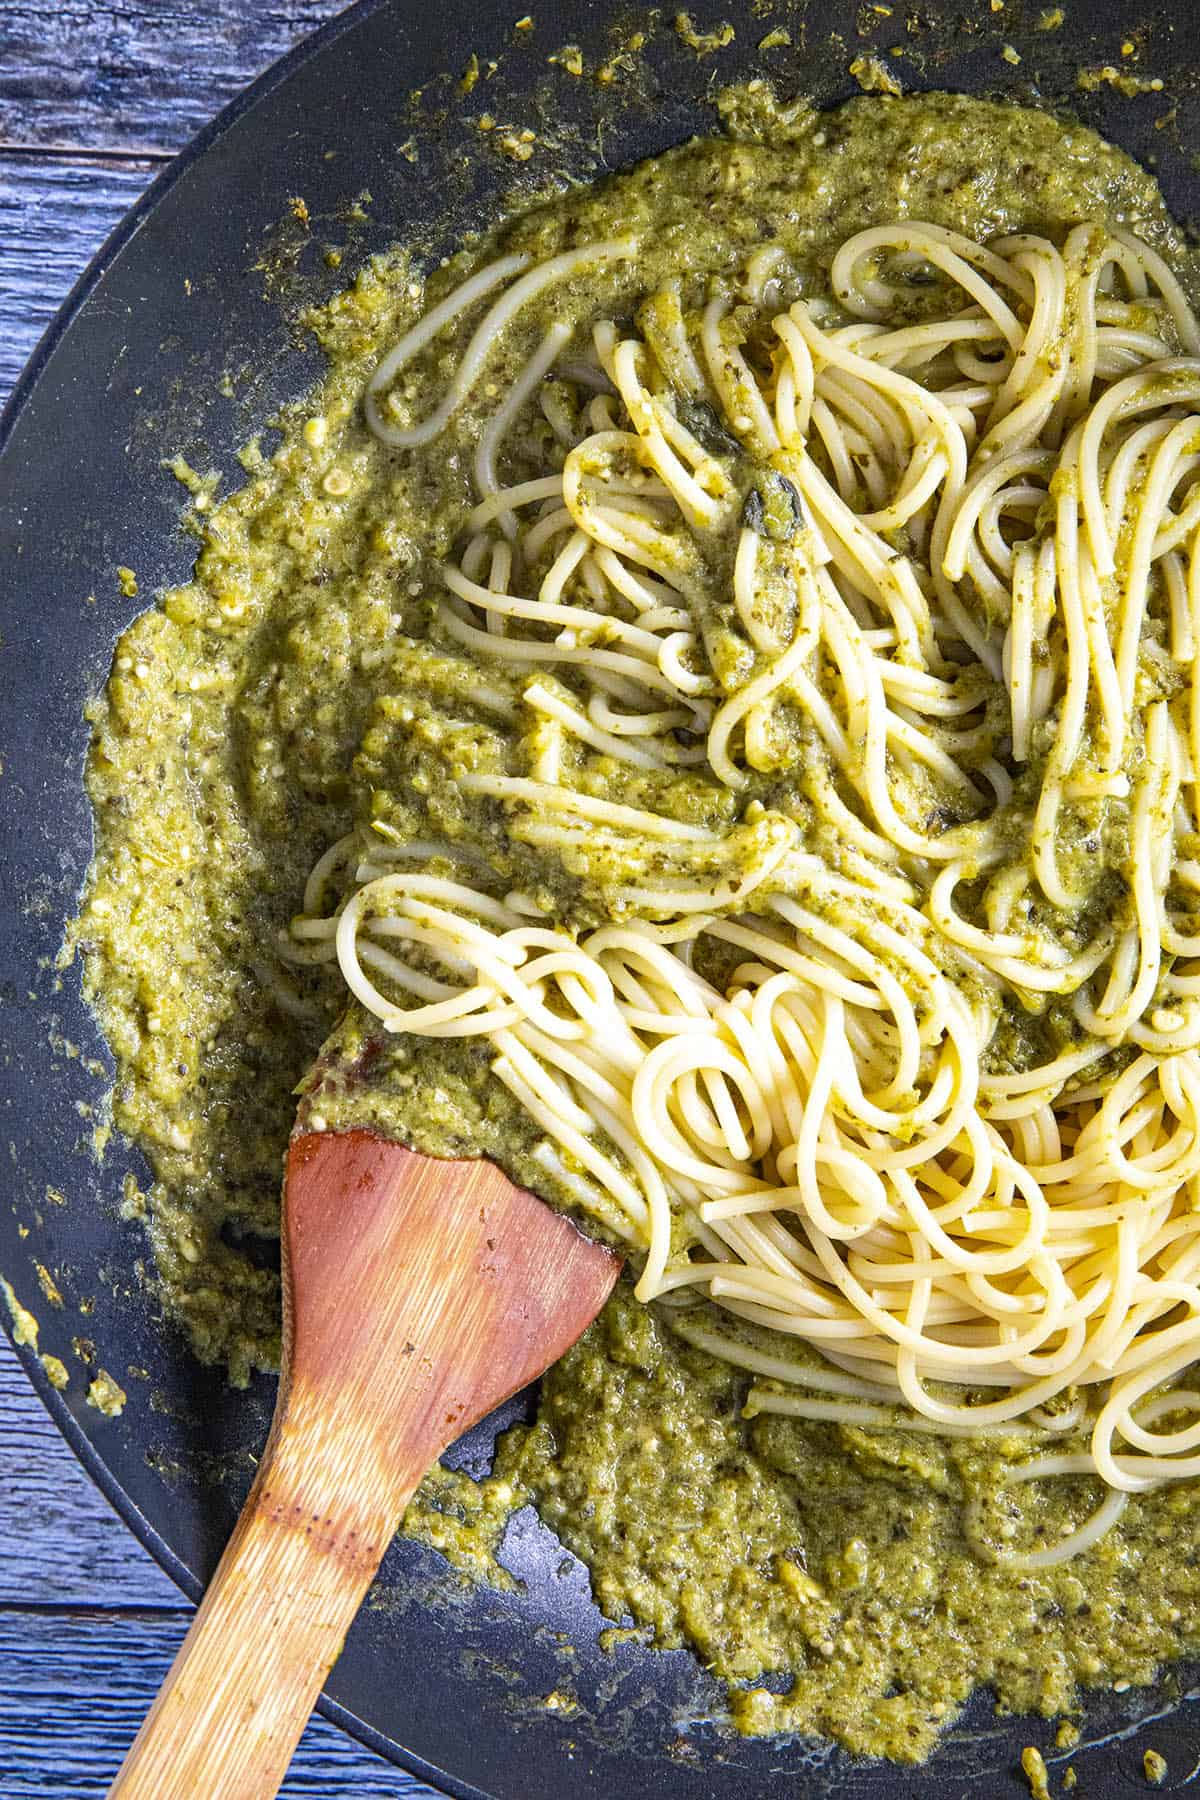 Swirling cooked spaghetti noodles into the Spaghetti Verde sauce